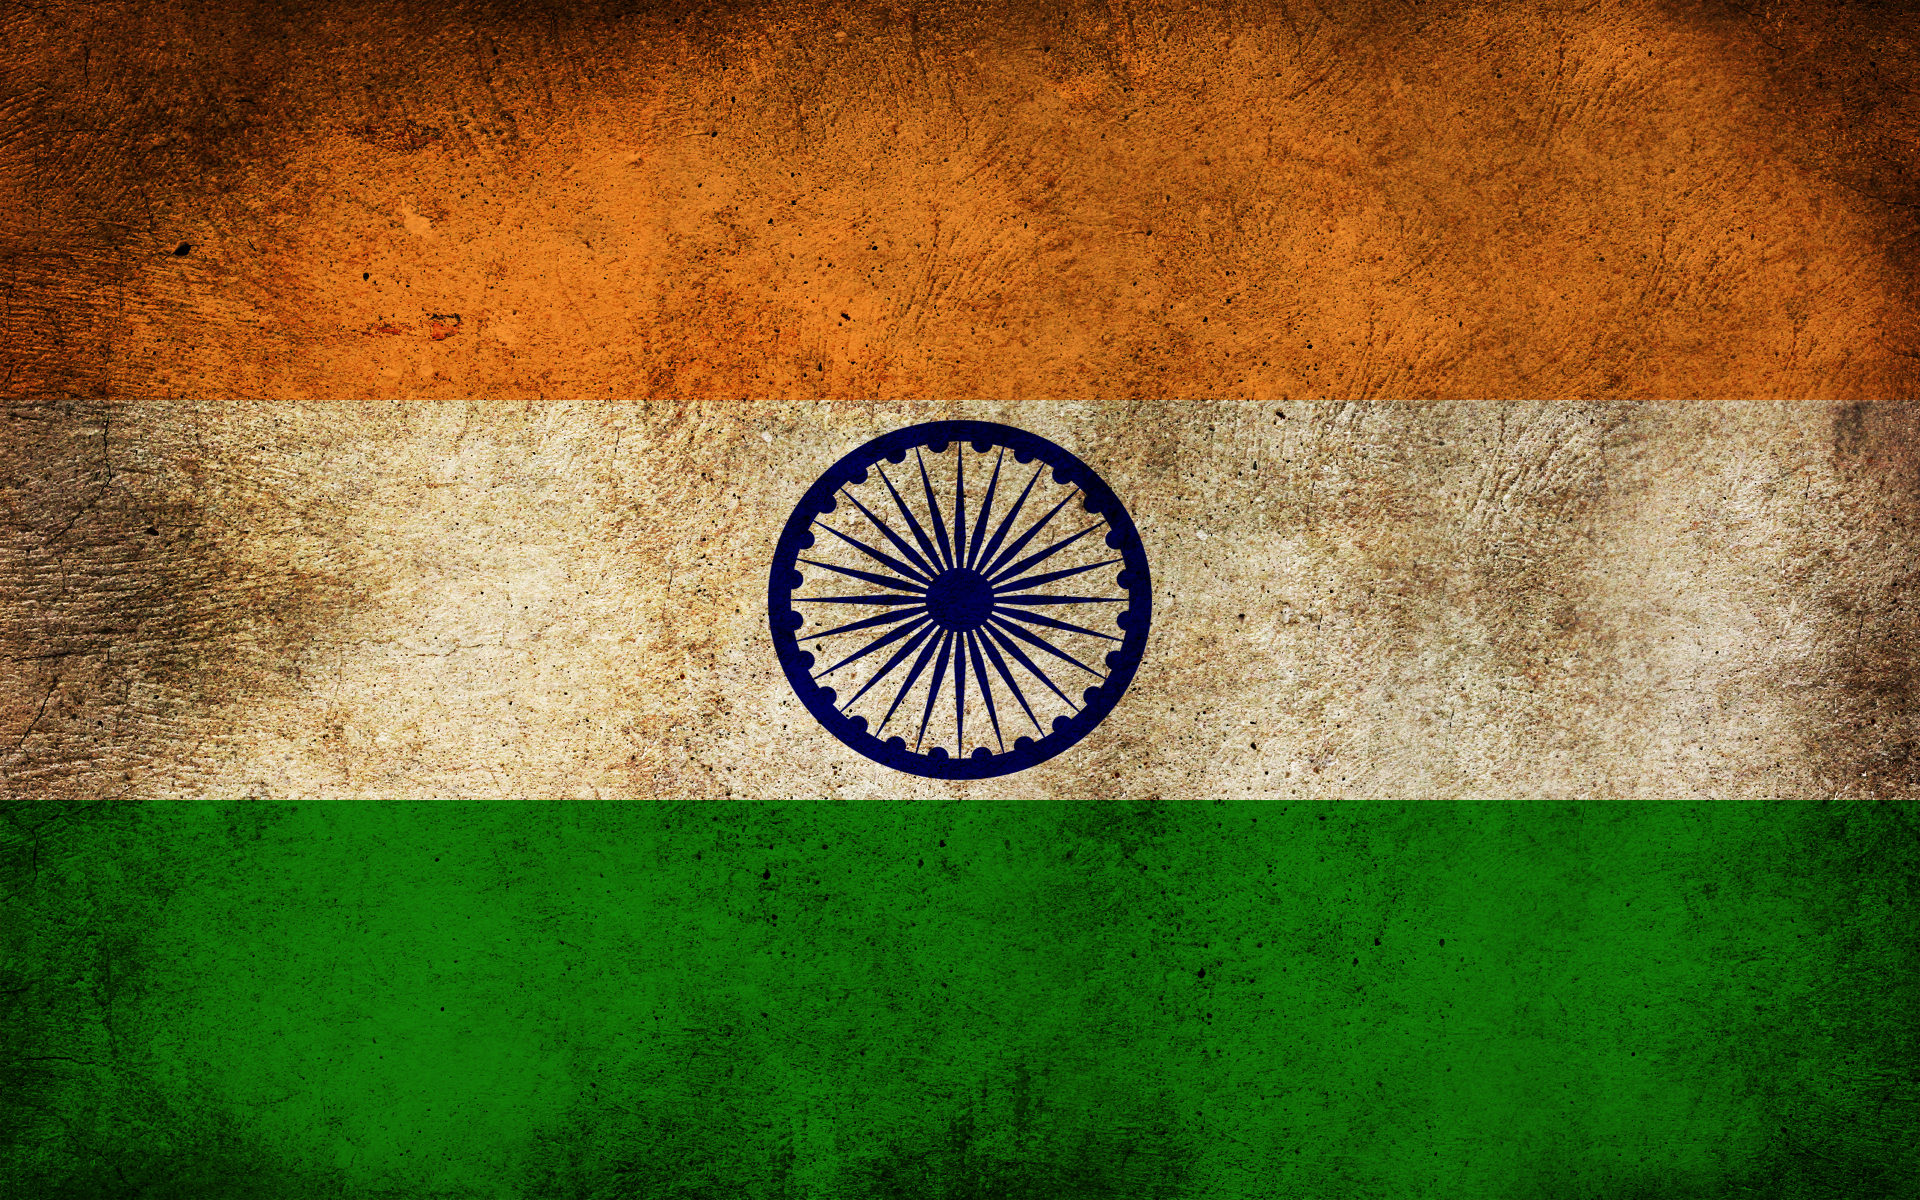 Indian Flag Images Hd720p: Hd Wallpaper India